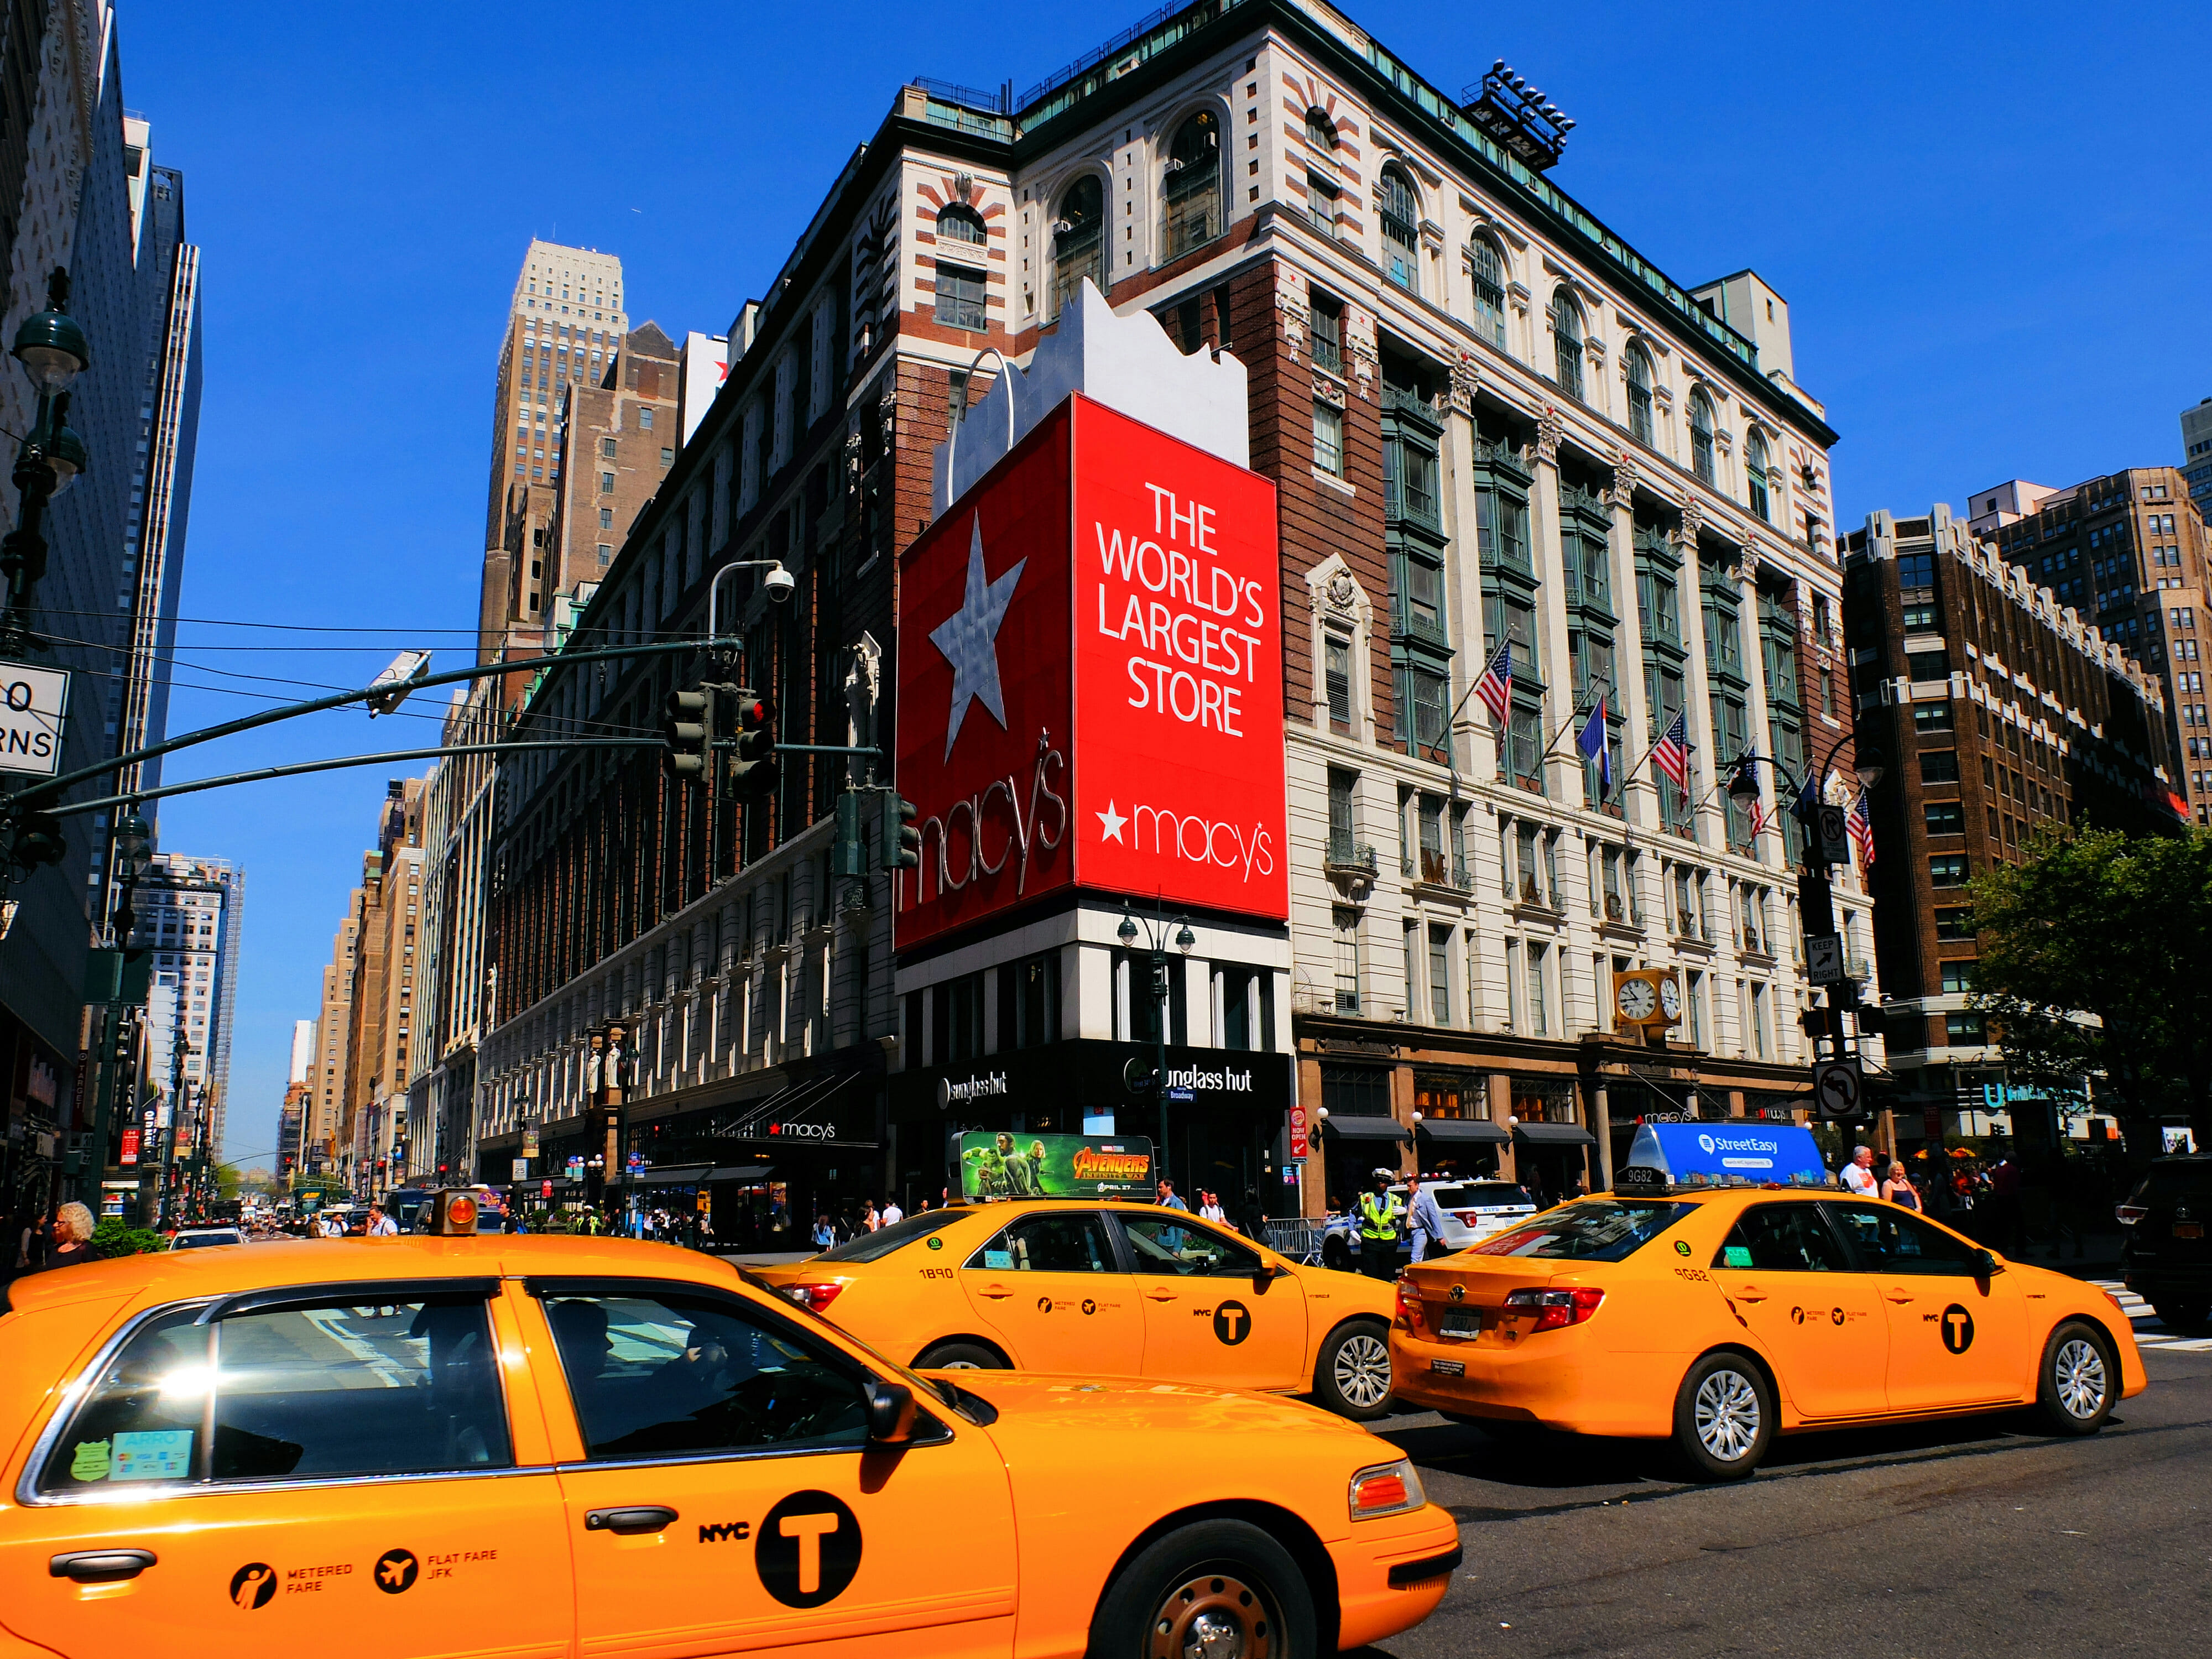 Macys in New York – High Quality Wallpaper